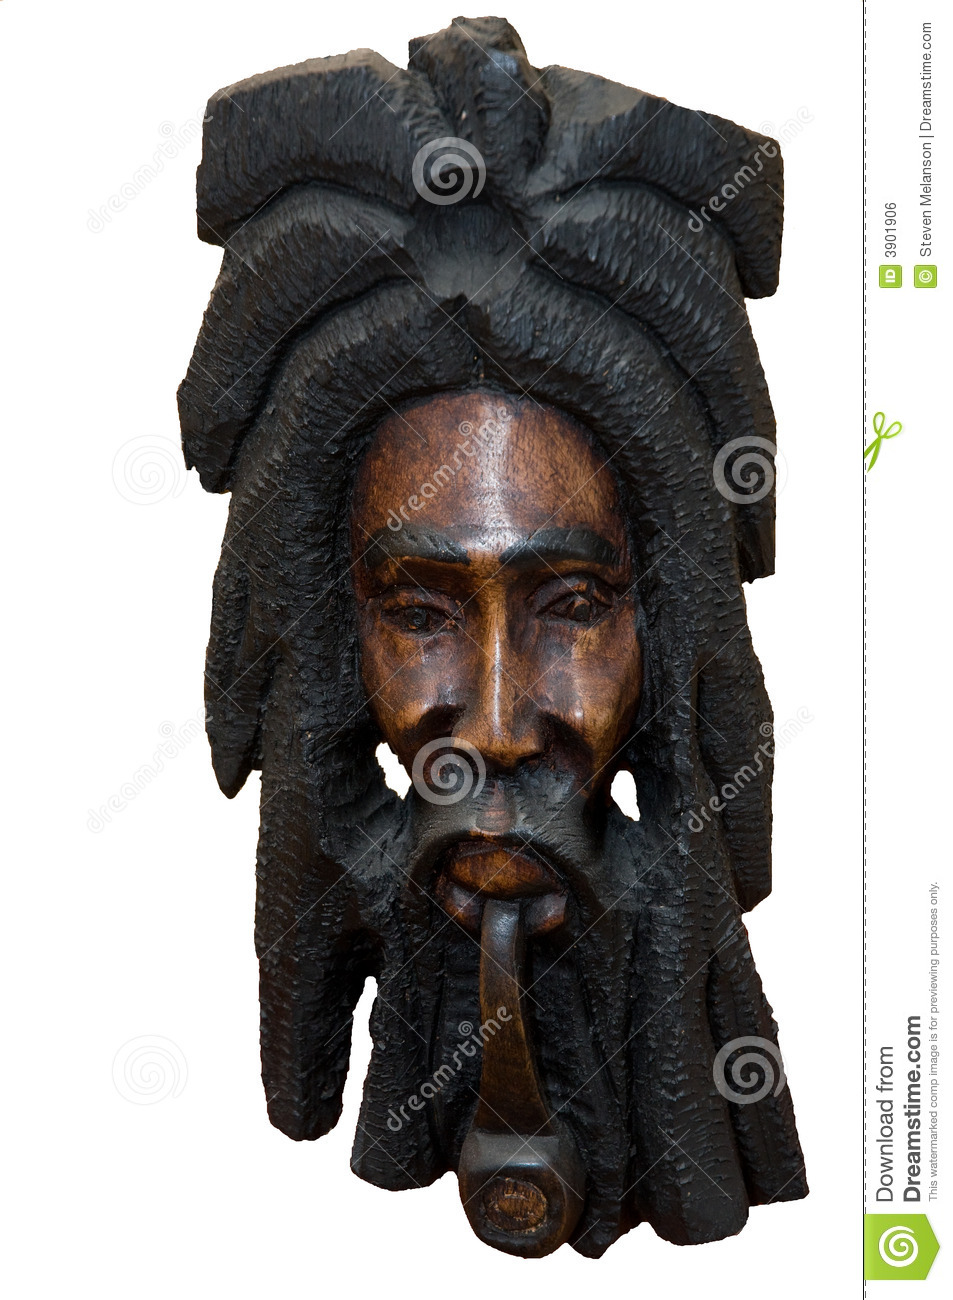 Jamaican Carving Royalty Free Stock Image - Image: 3901906